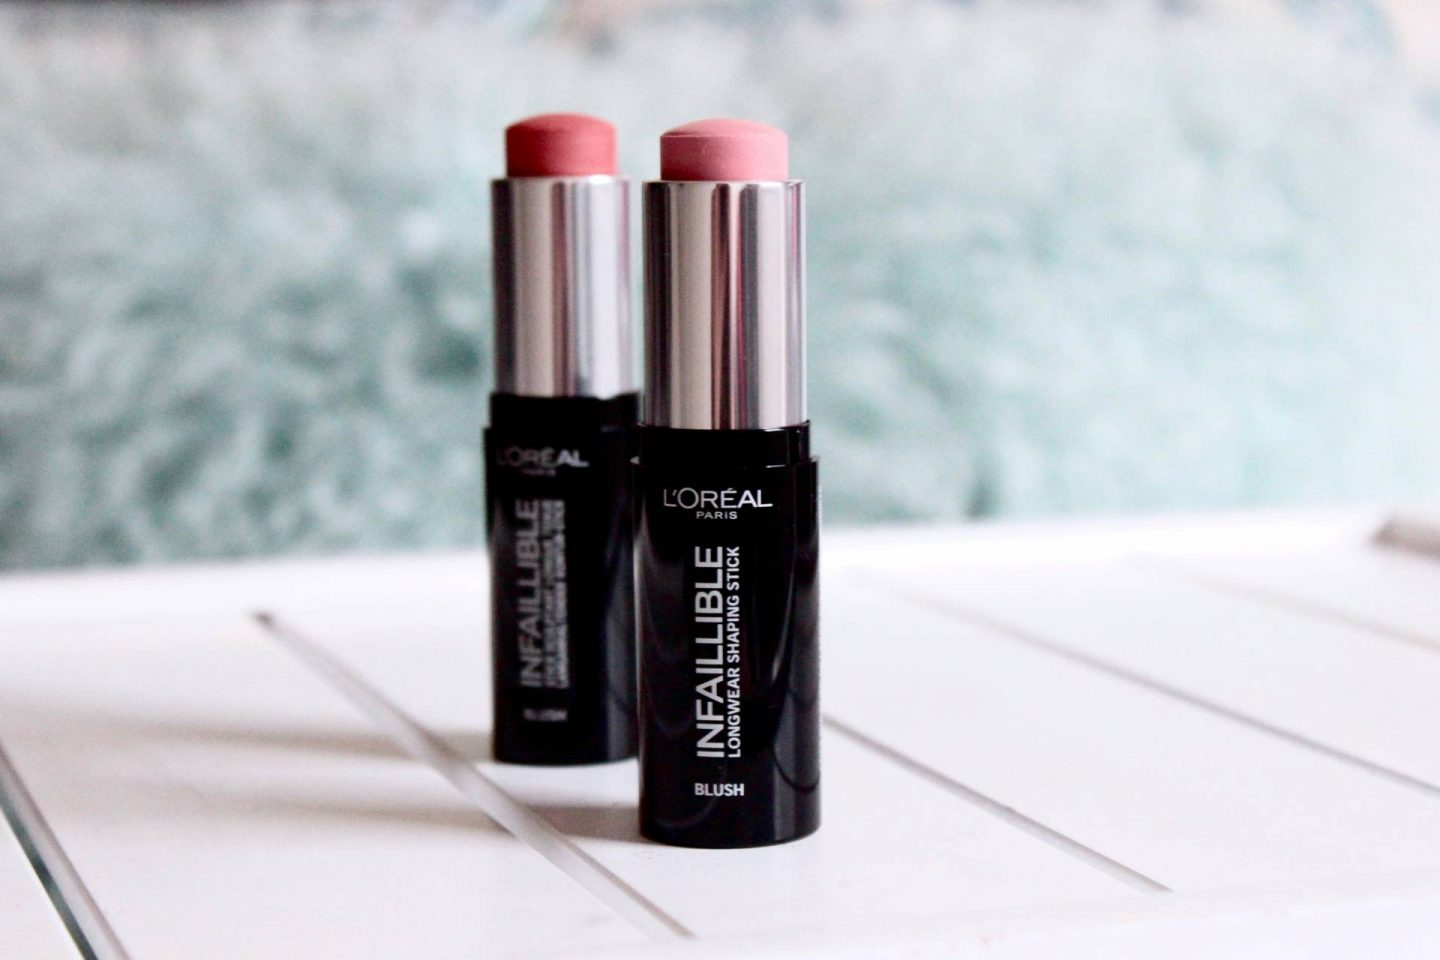 L'Oreal Infallible stick blushers shape it